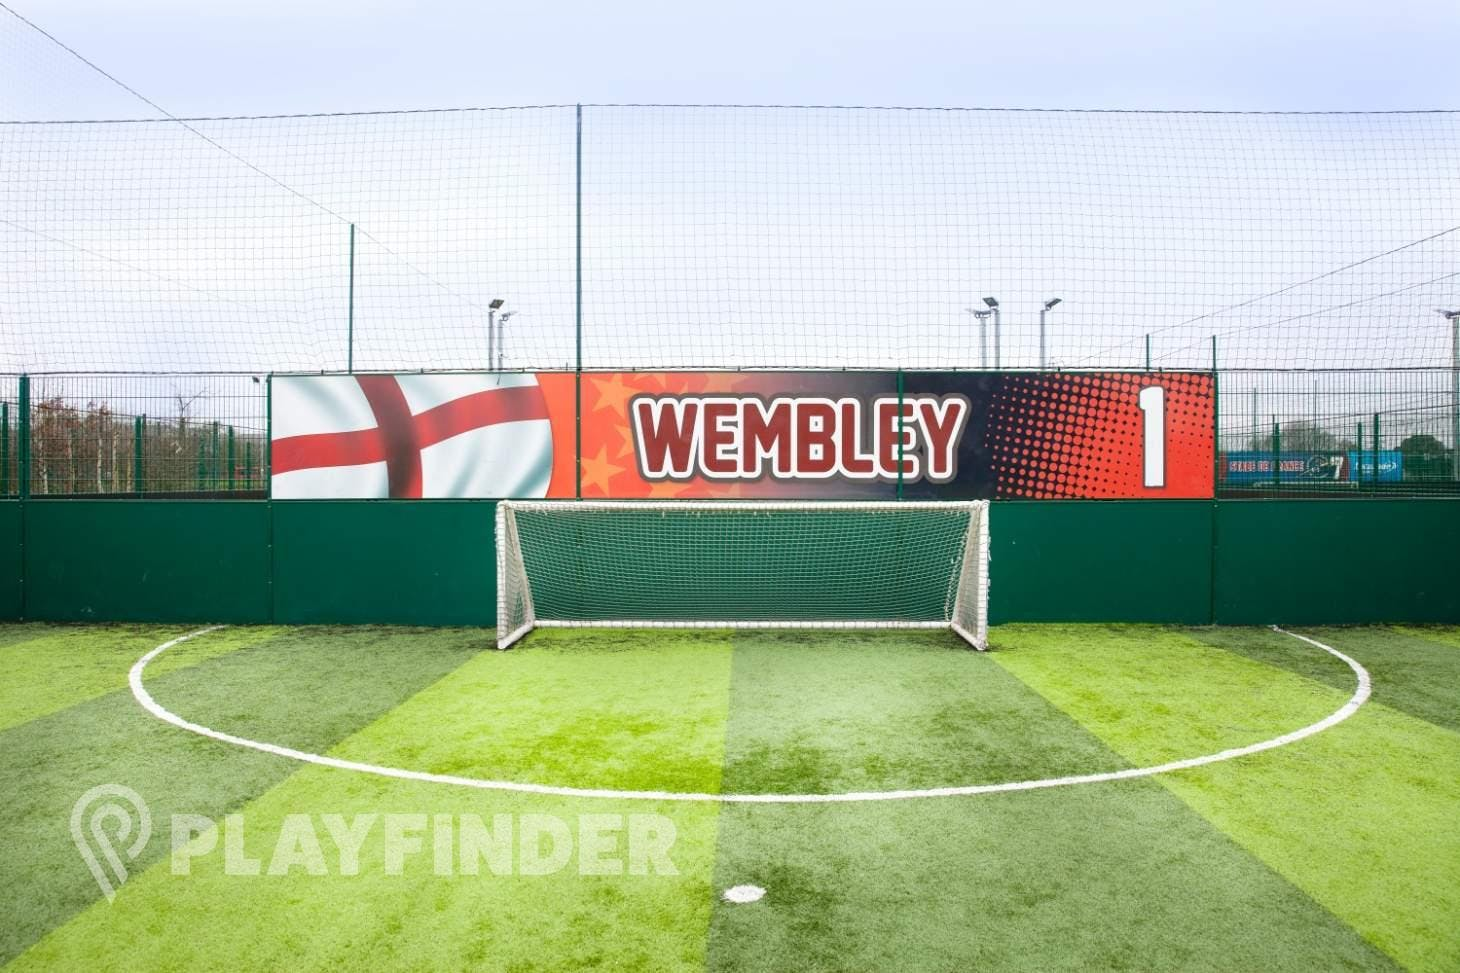 Goals Dudley 5 a side | 3G Astroturf football pitch